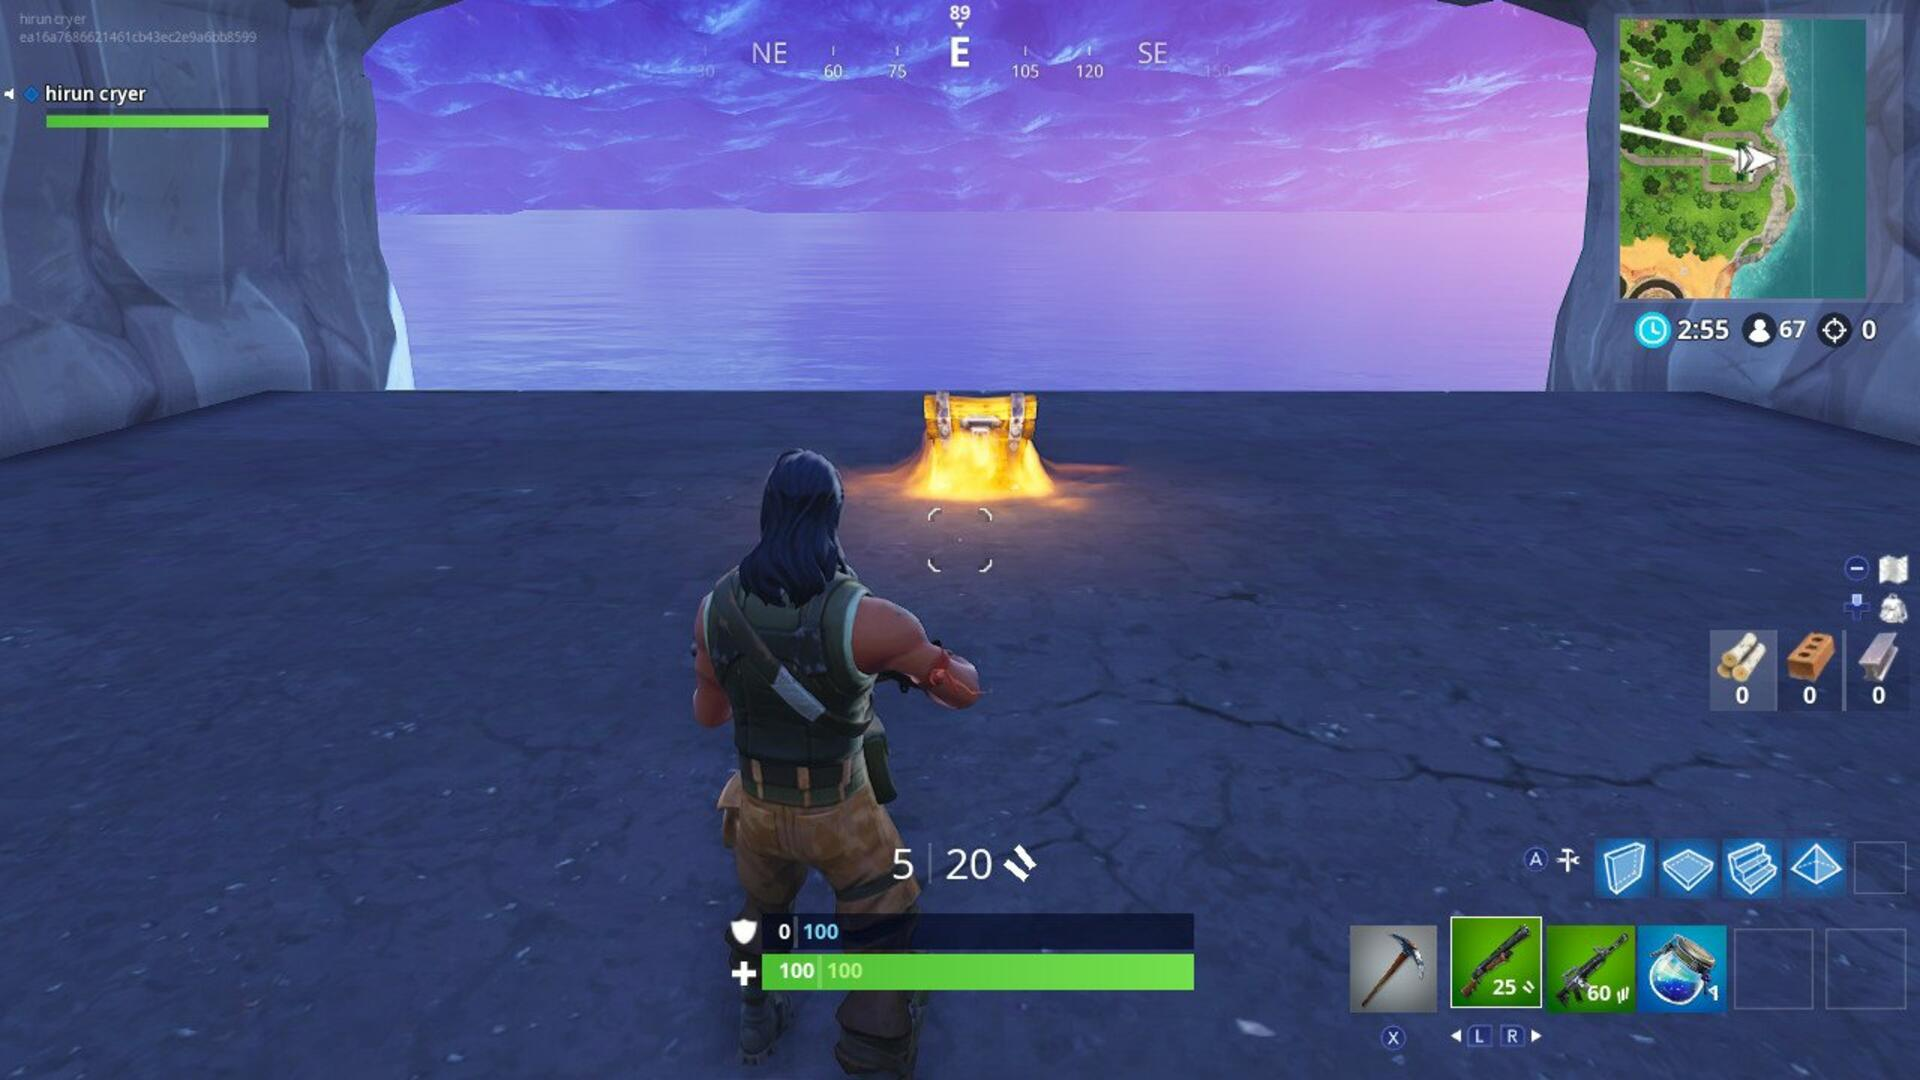 Fortnite Lonely Lodge Chests Locations - All Lonely Lodge Chest Locations